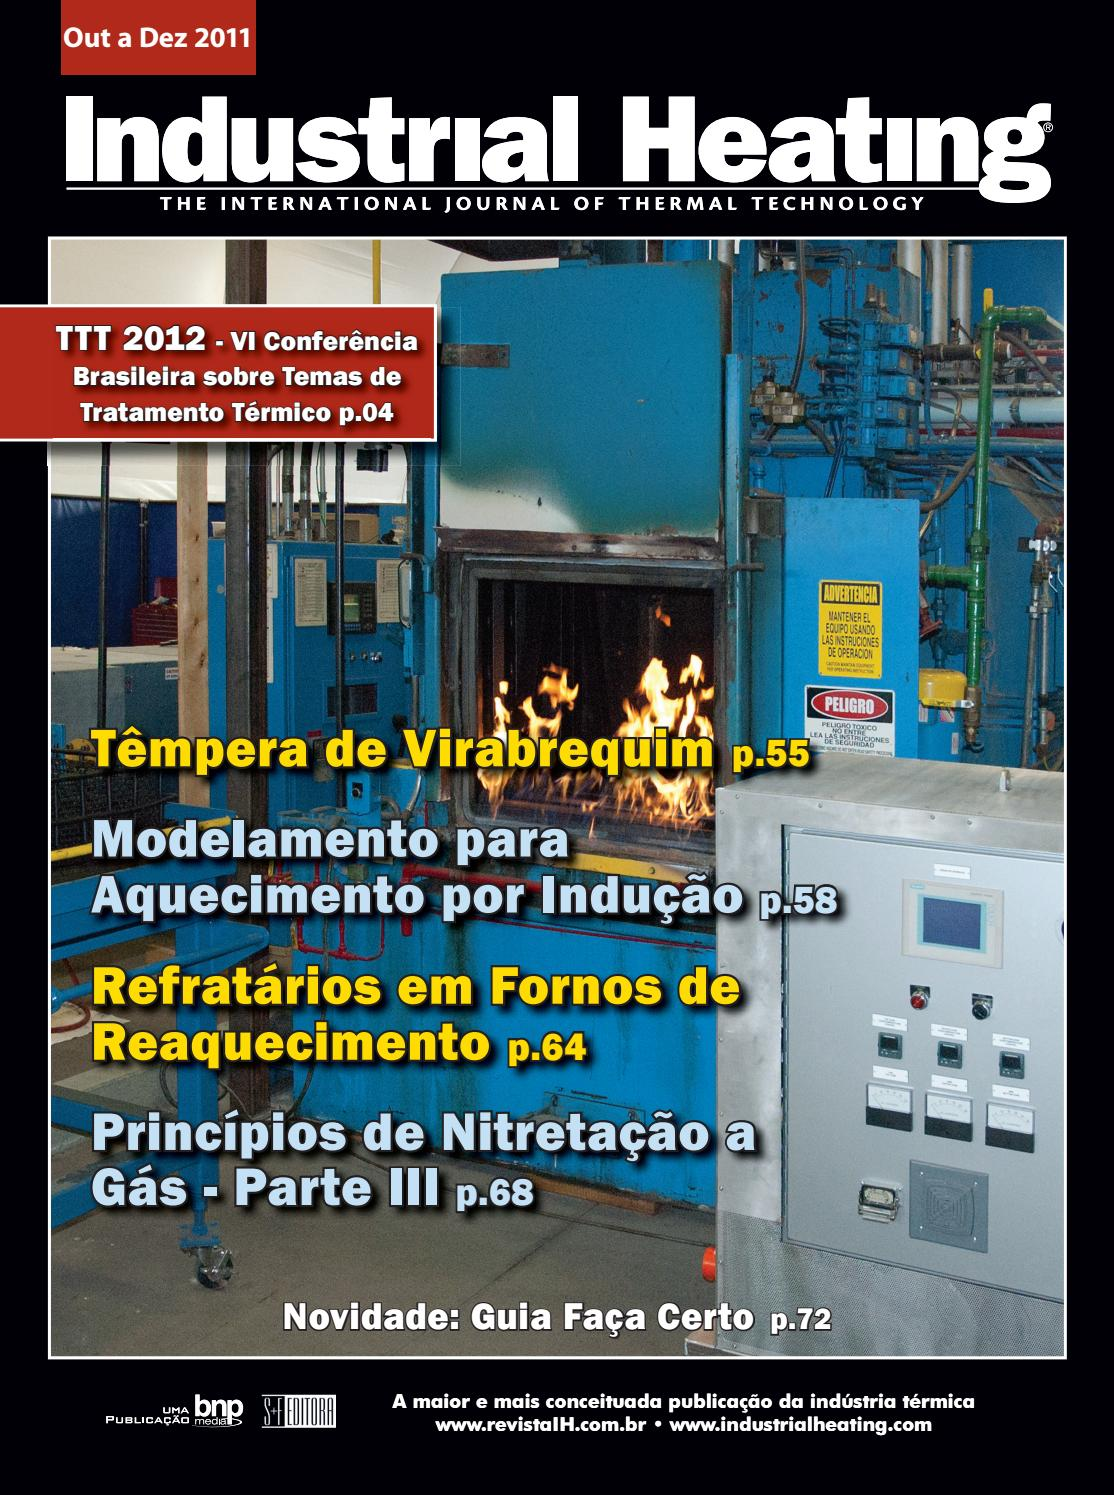 16d7f6b7ed6 Revista Industrial Heating - Out a Dez 2011 by S+F Editora - issuu